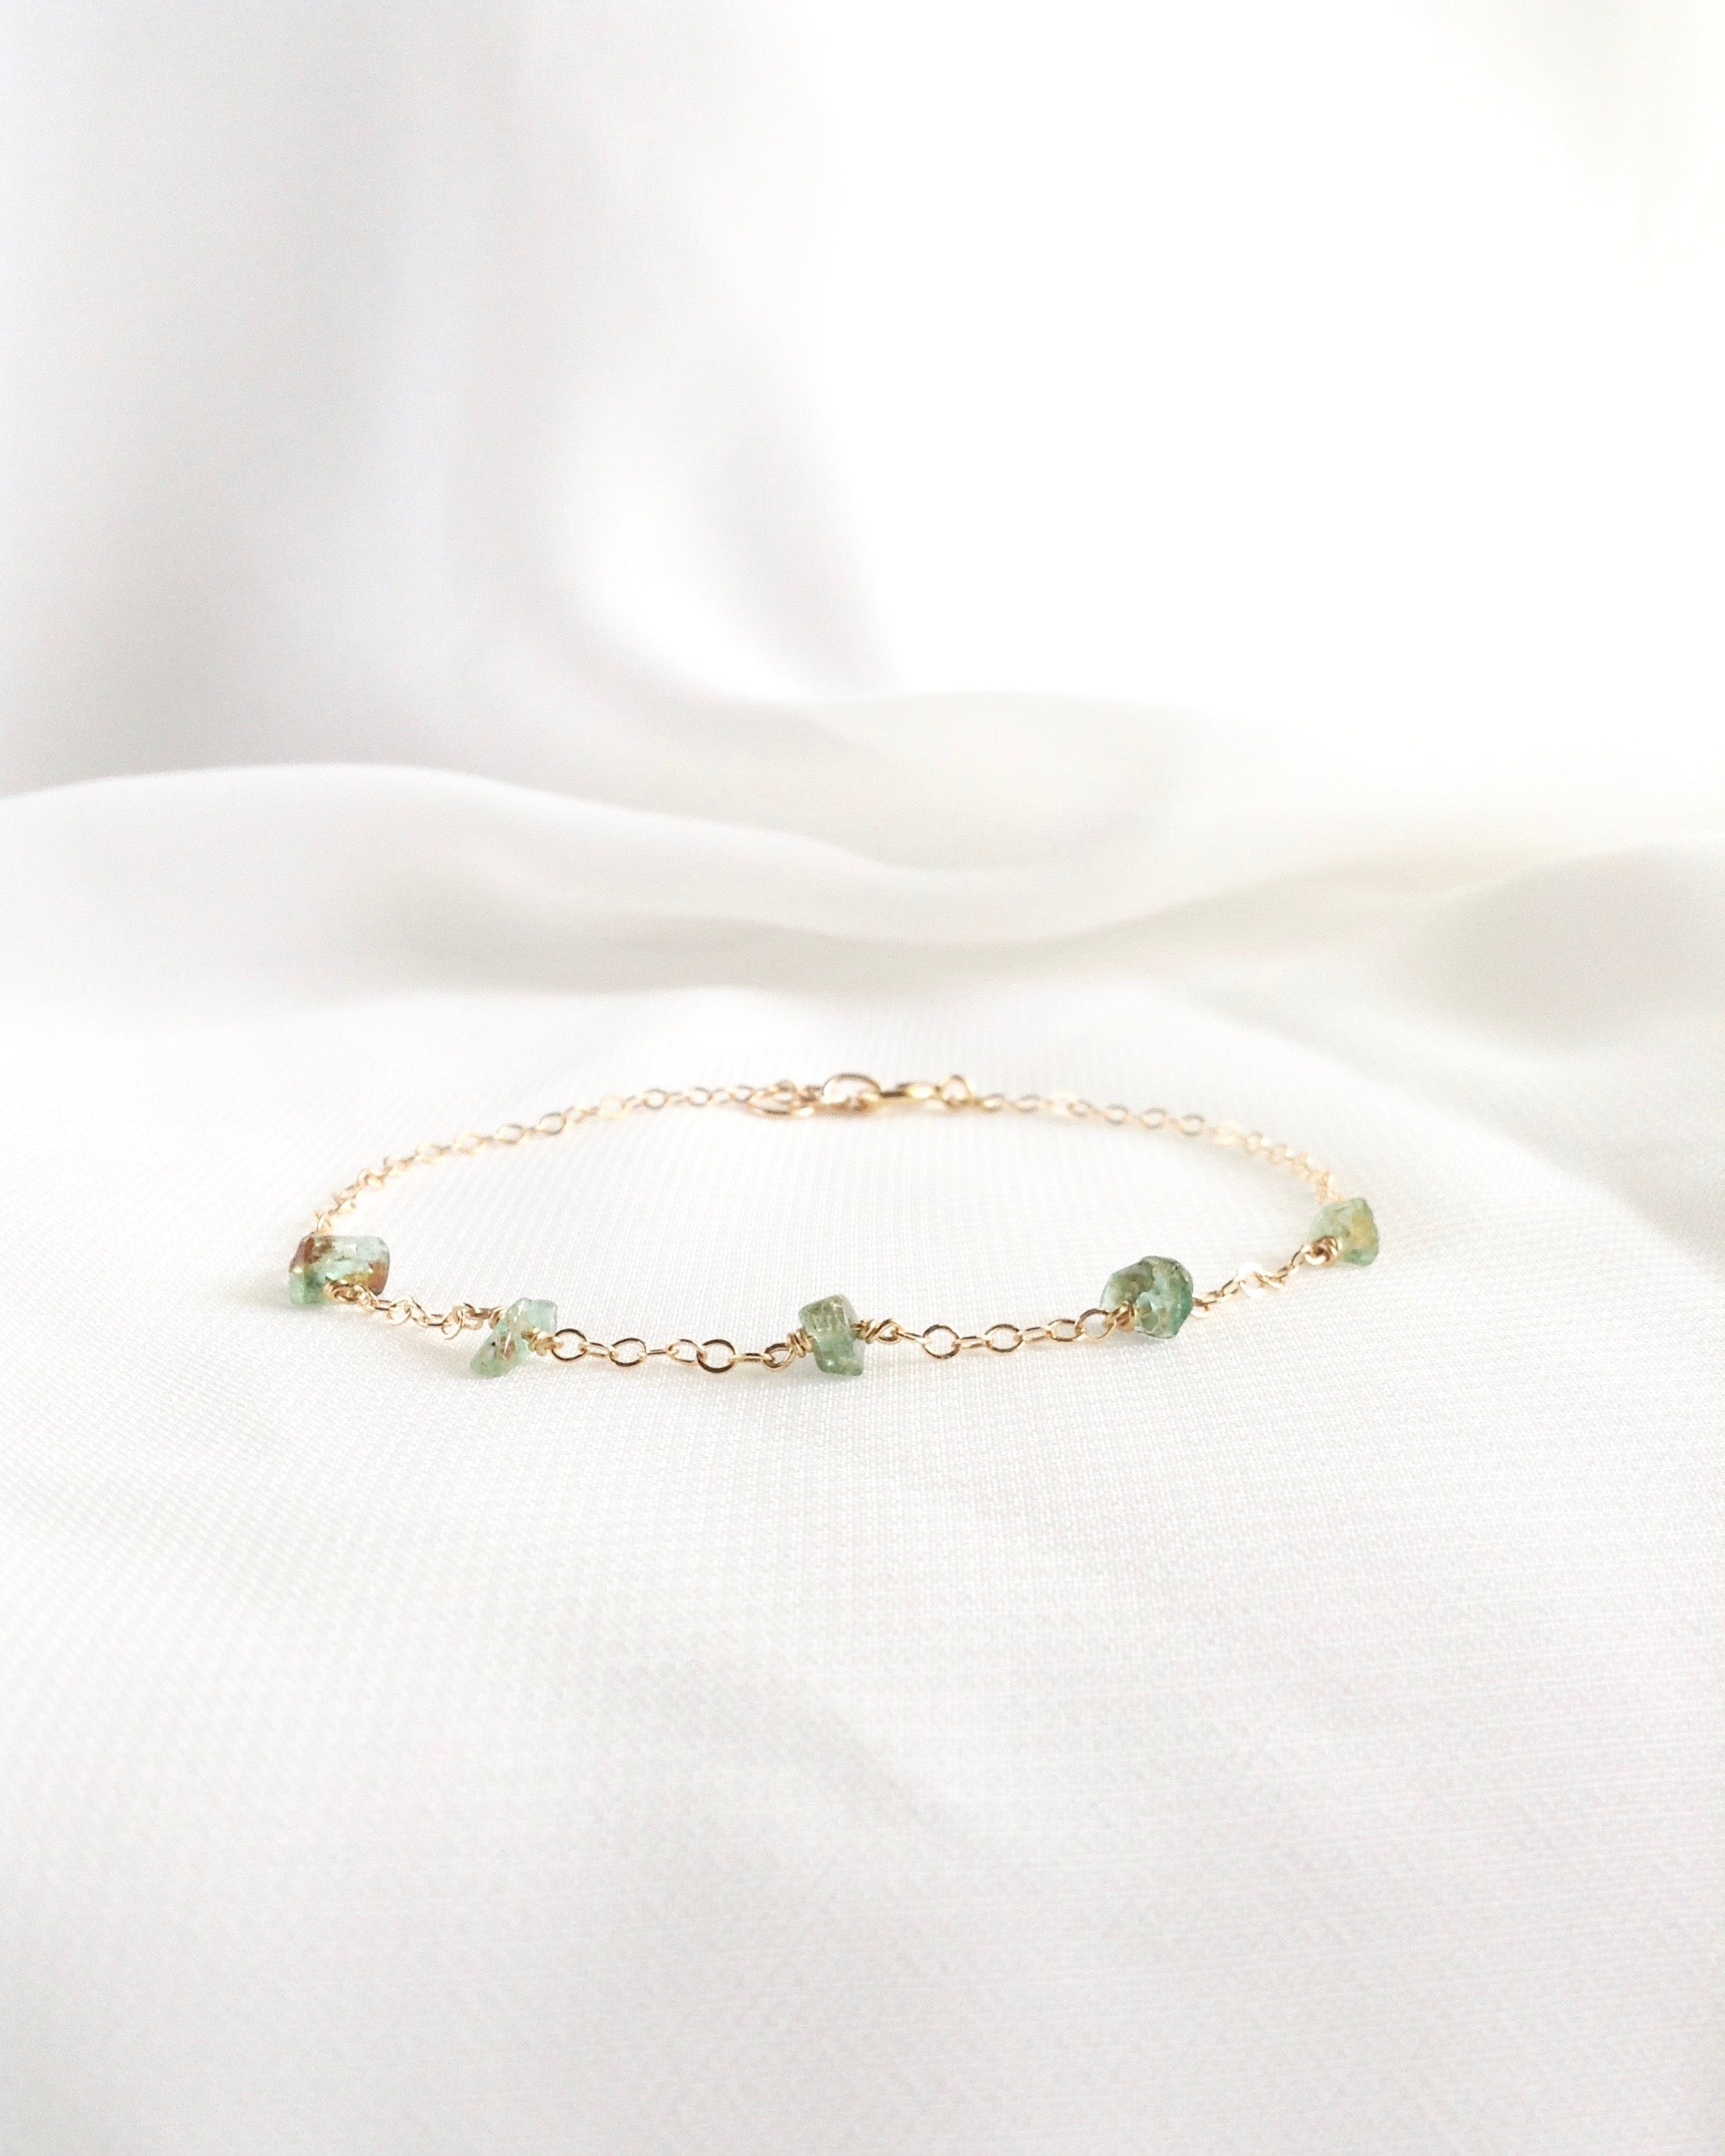 Raw Emerald Bracelet | Dainty Gemstone Bracelet | IB Jewelry